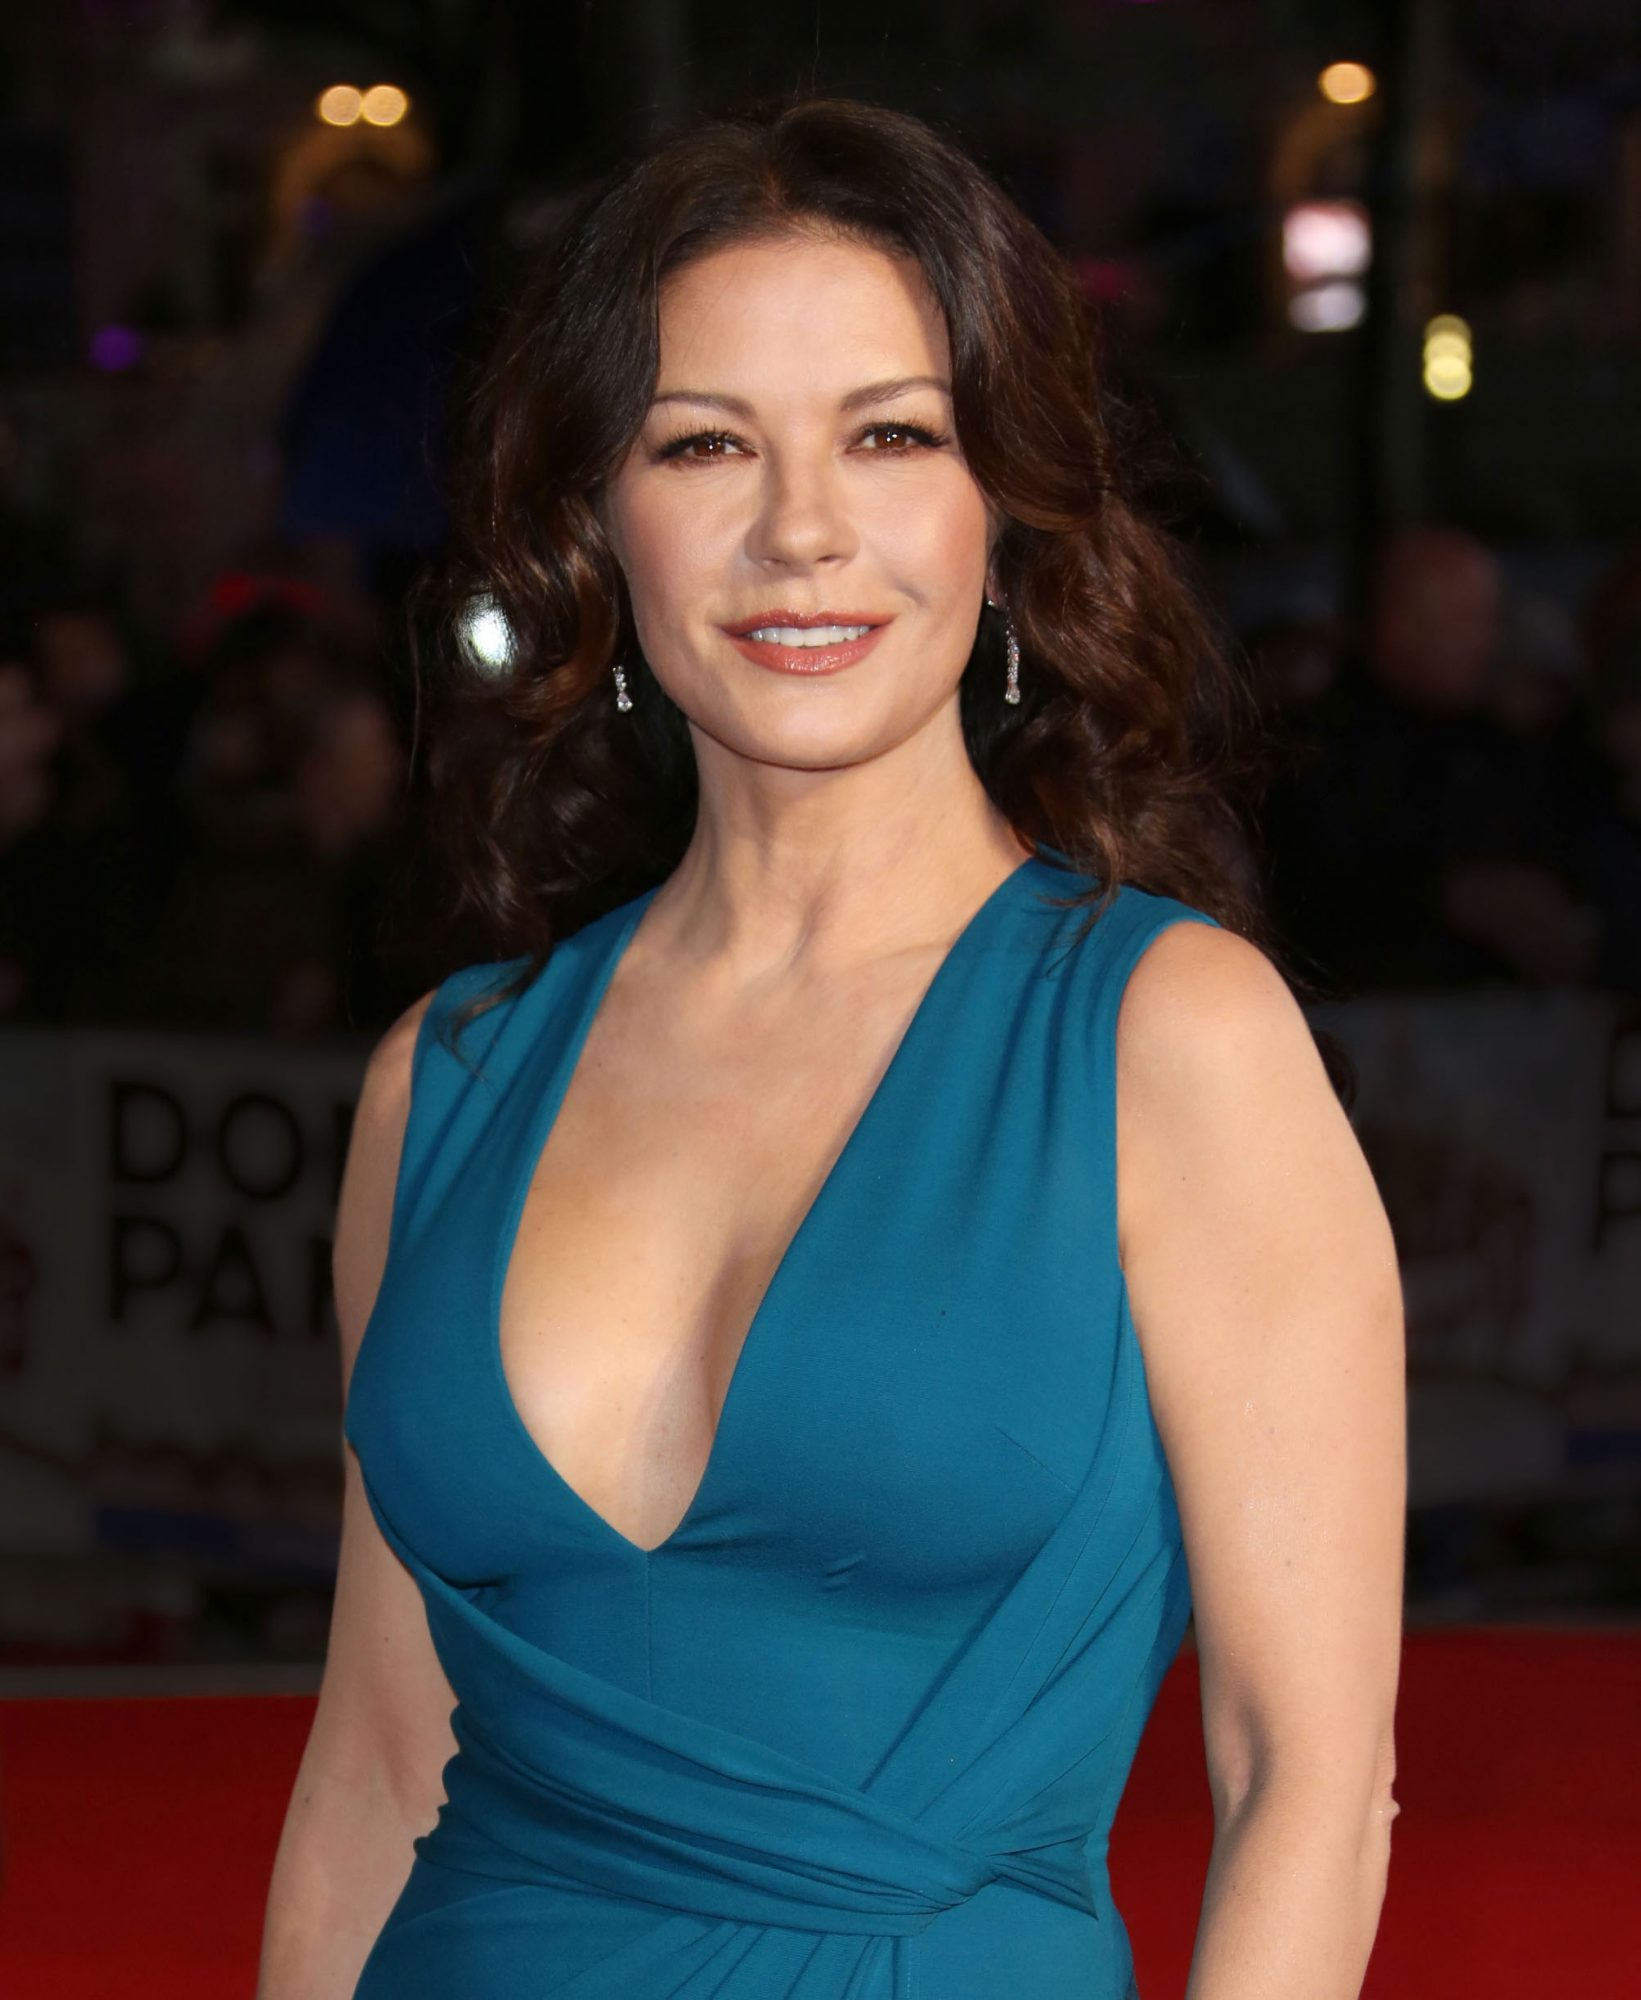 """We Can't Get a Few Gray Hairs"": Catherine Zeta-Jones on Being a Woman in Hollywood"